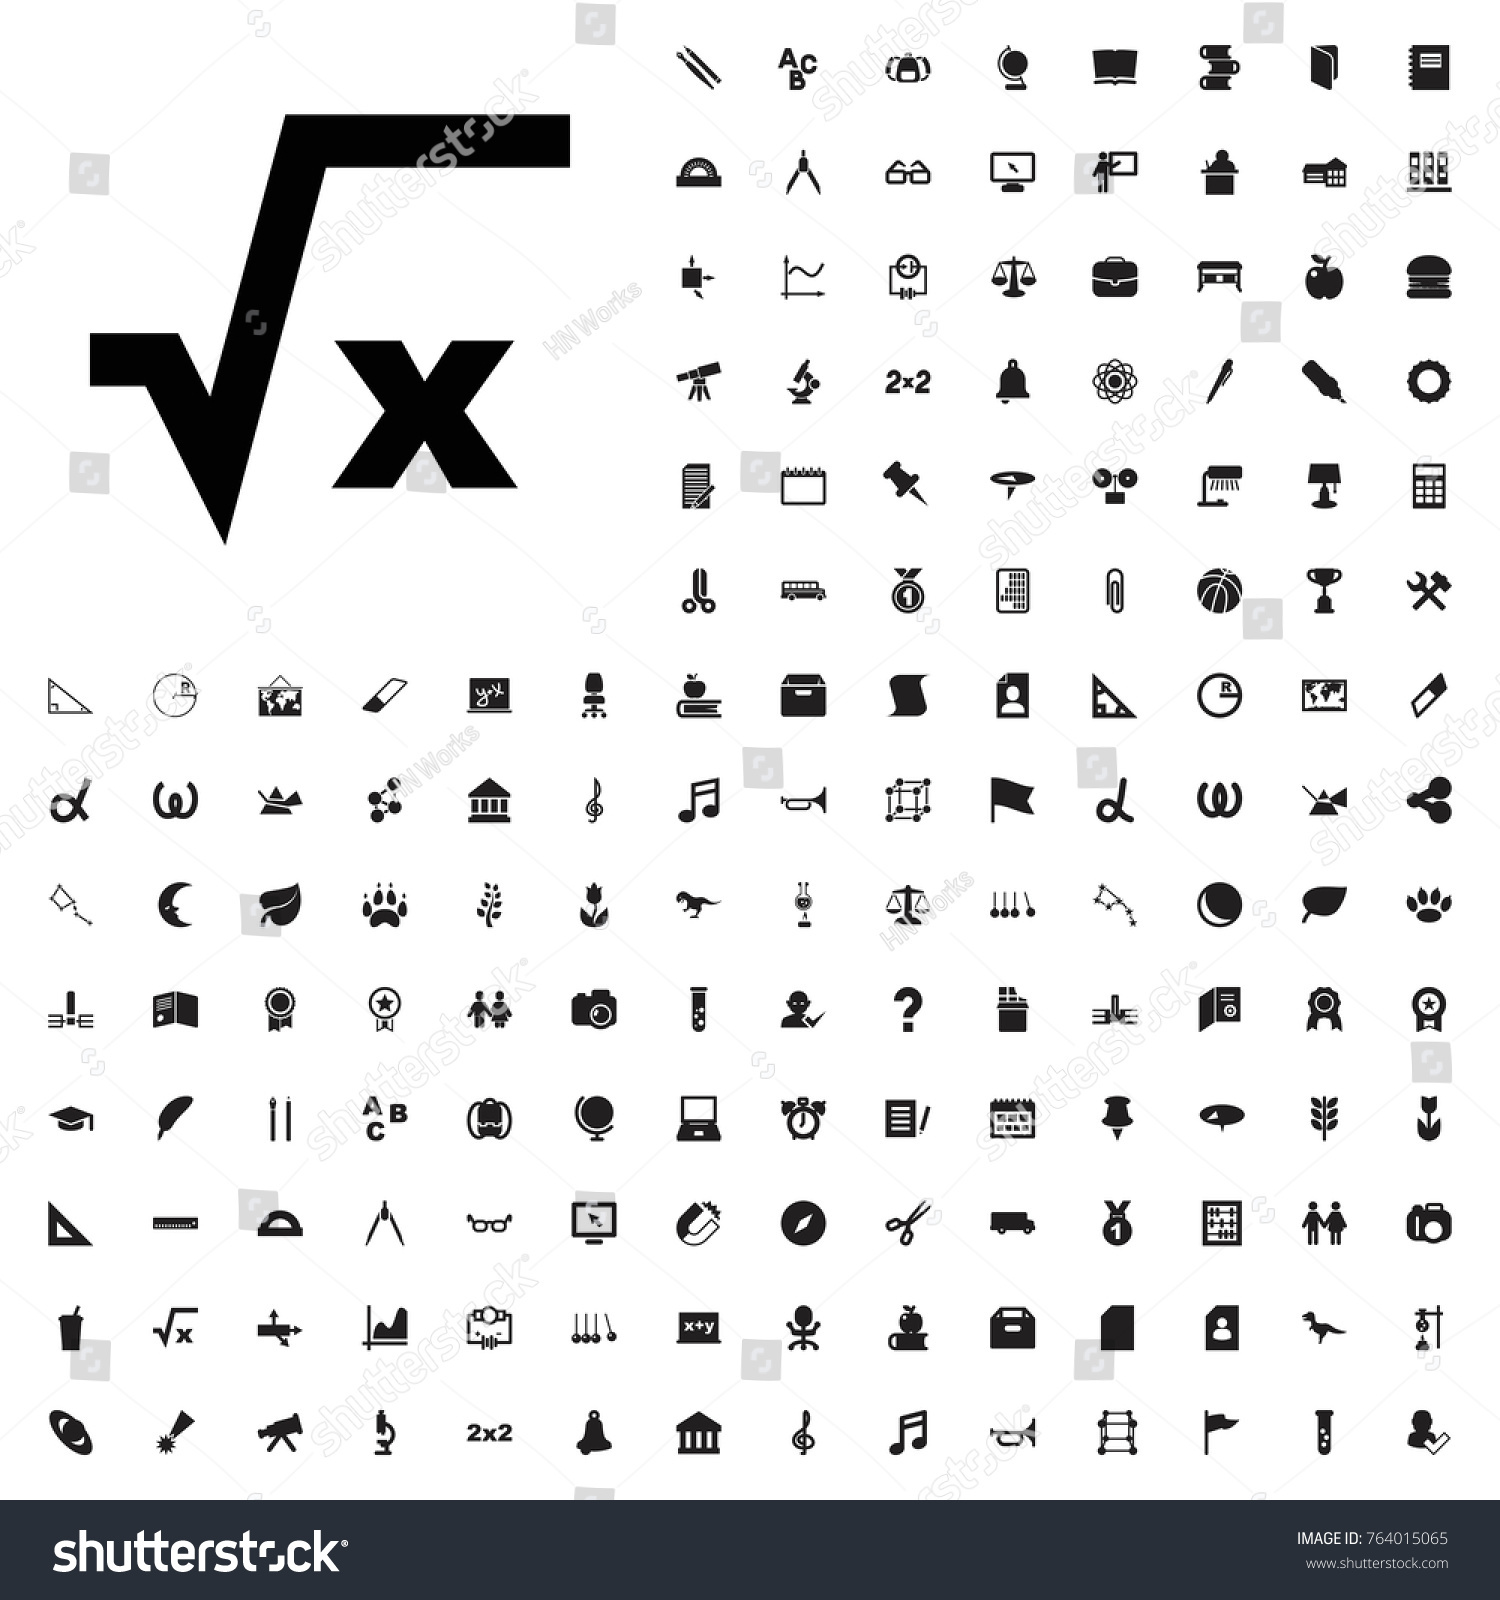 Square Root Icon Illustration Isolated Vector Stock Vector Royalty